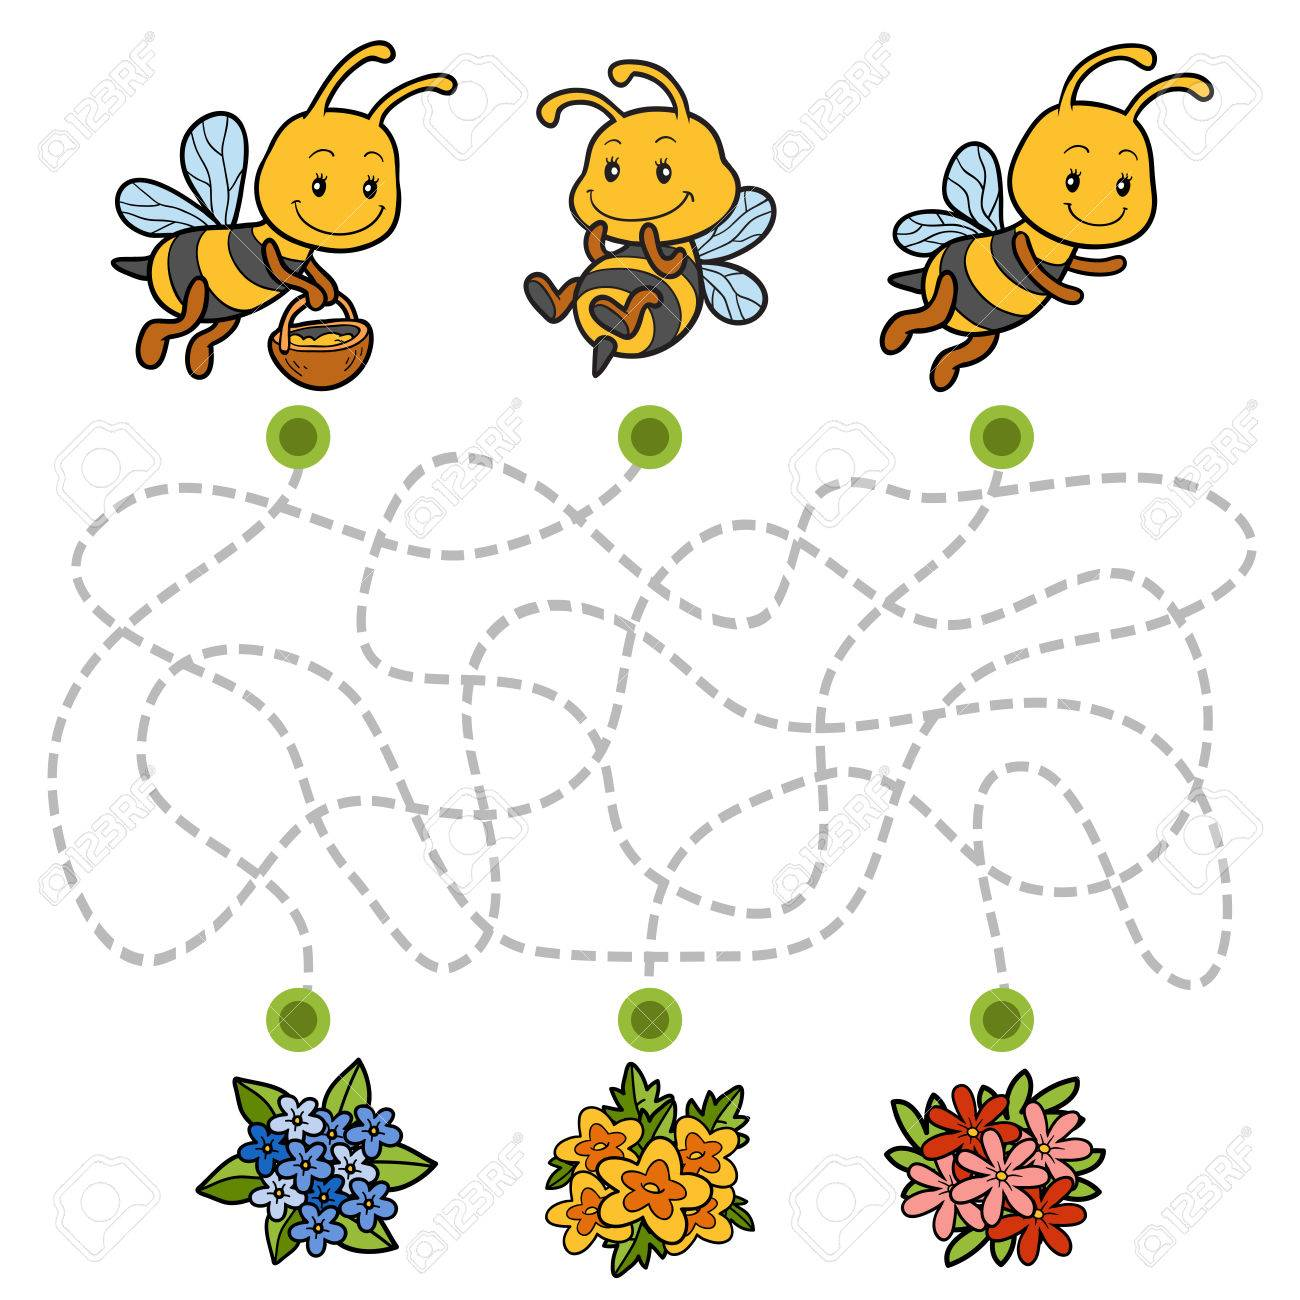 Maze game, education game for children. Help the bees to find their way to the flowers! - 60596585